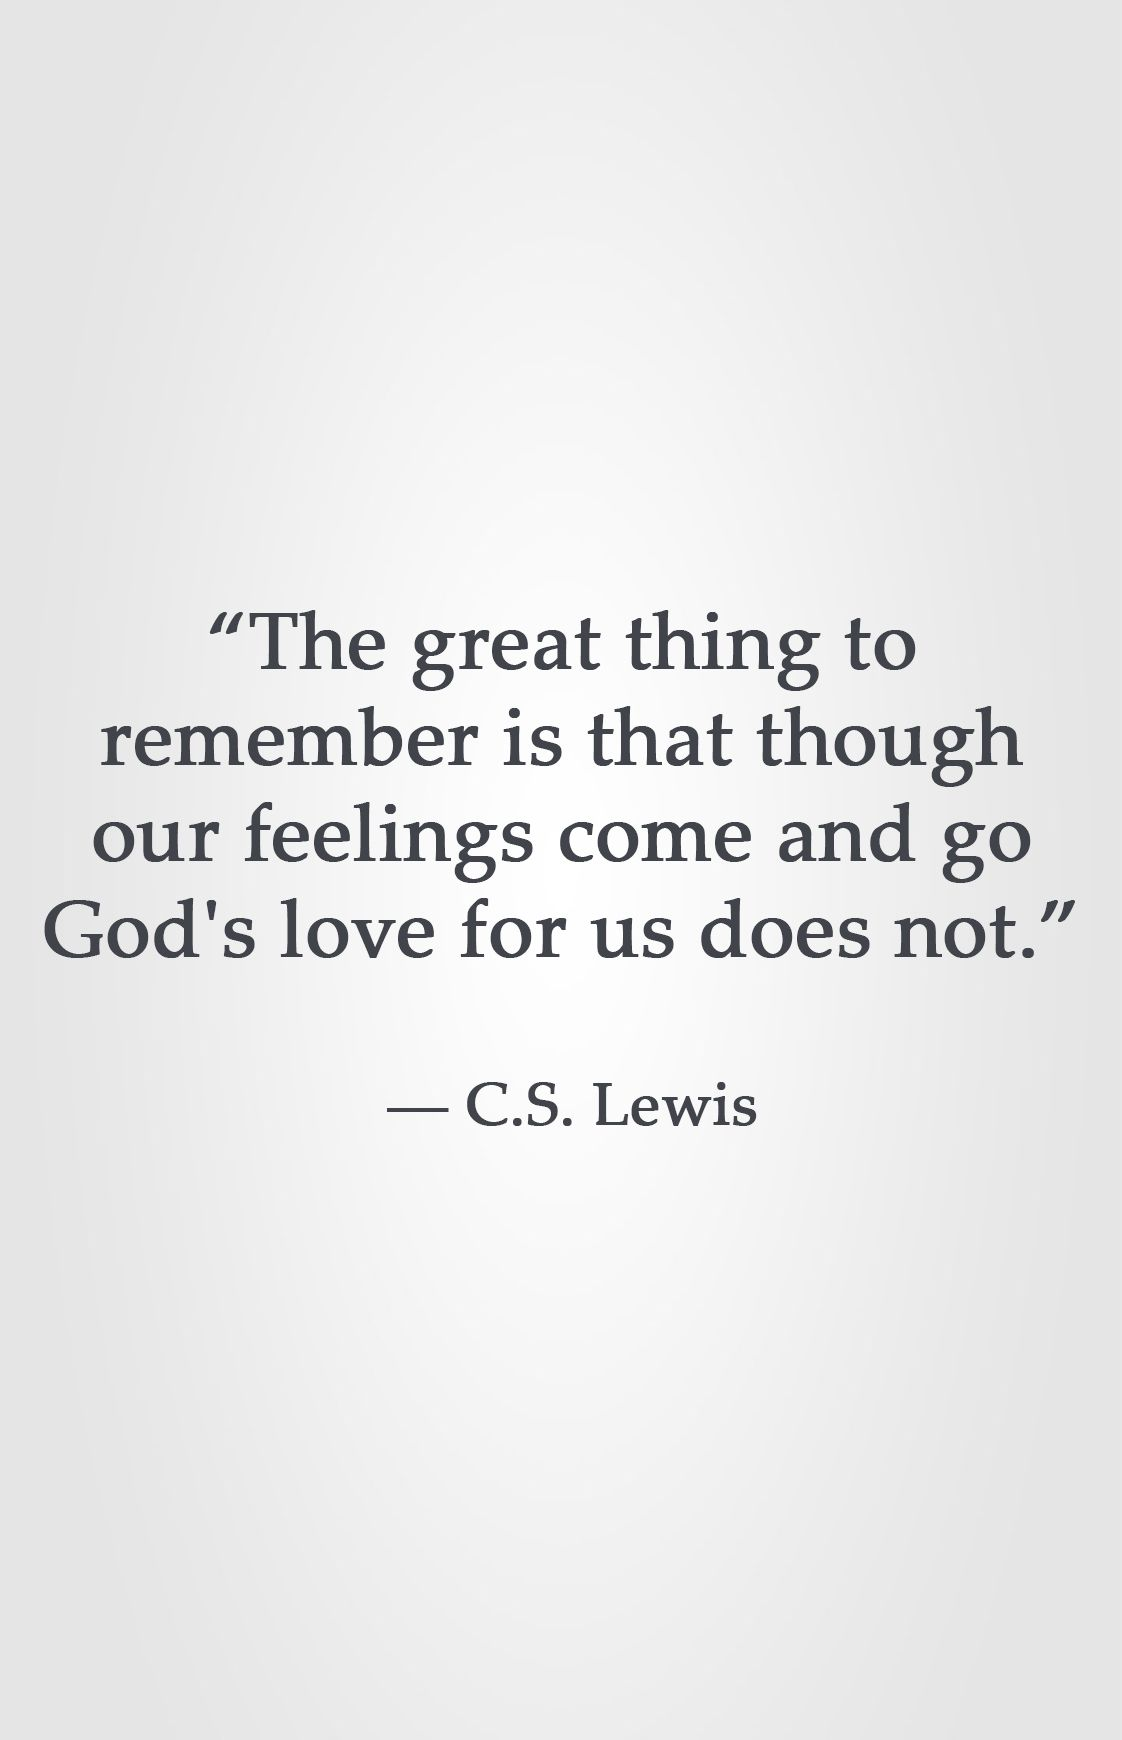 God's Love Quotes The Great Thing To Remember Is That Though Our Feelings Come And Go